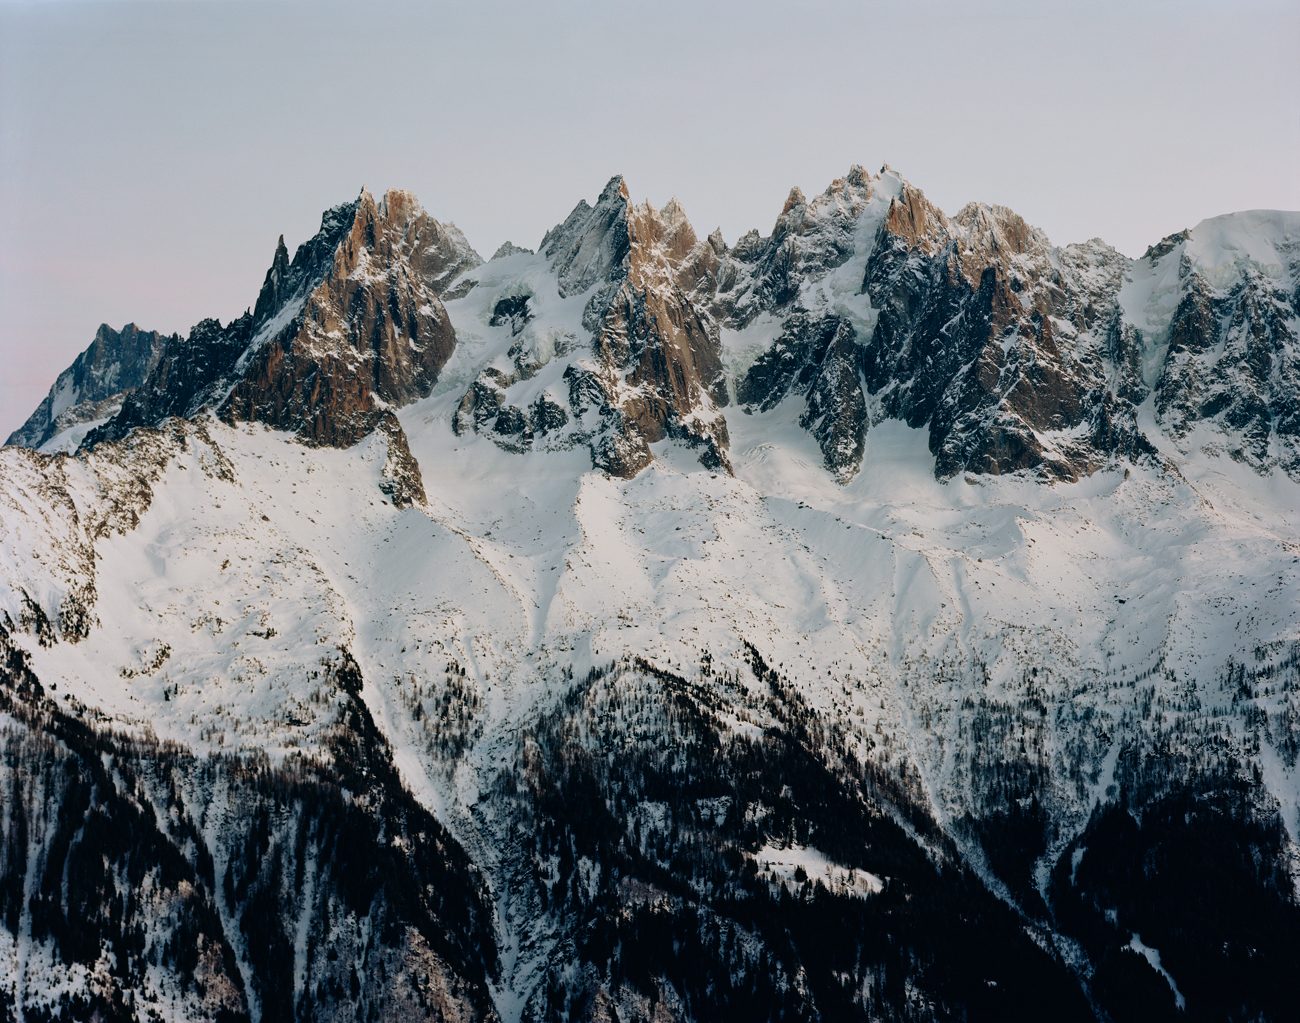 Mont-Blanc-Massif in Chamonix France Large-Format photograph